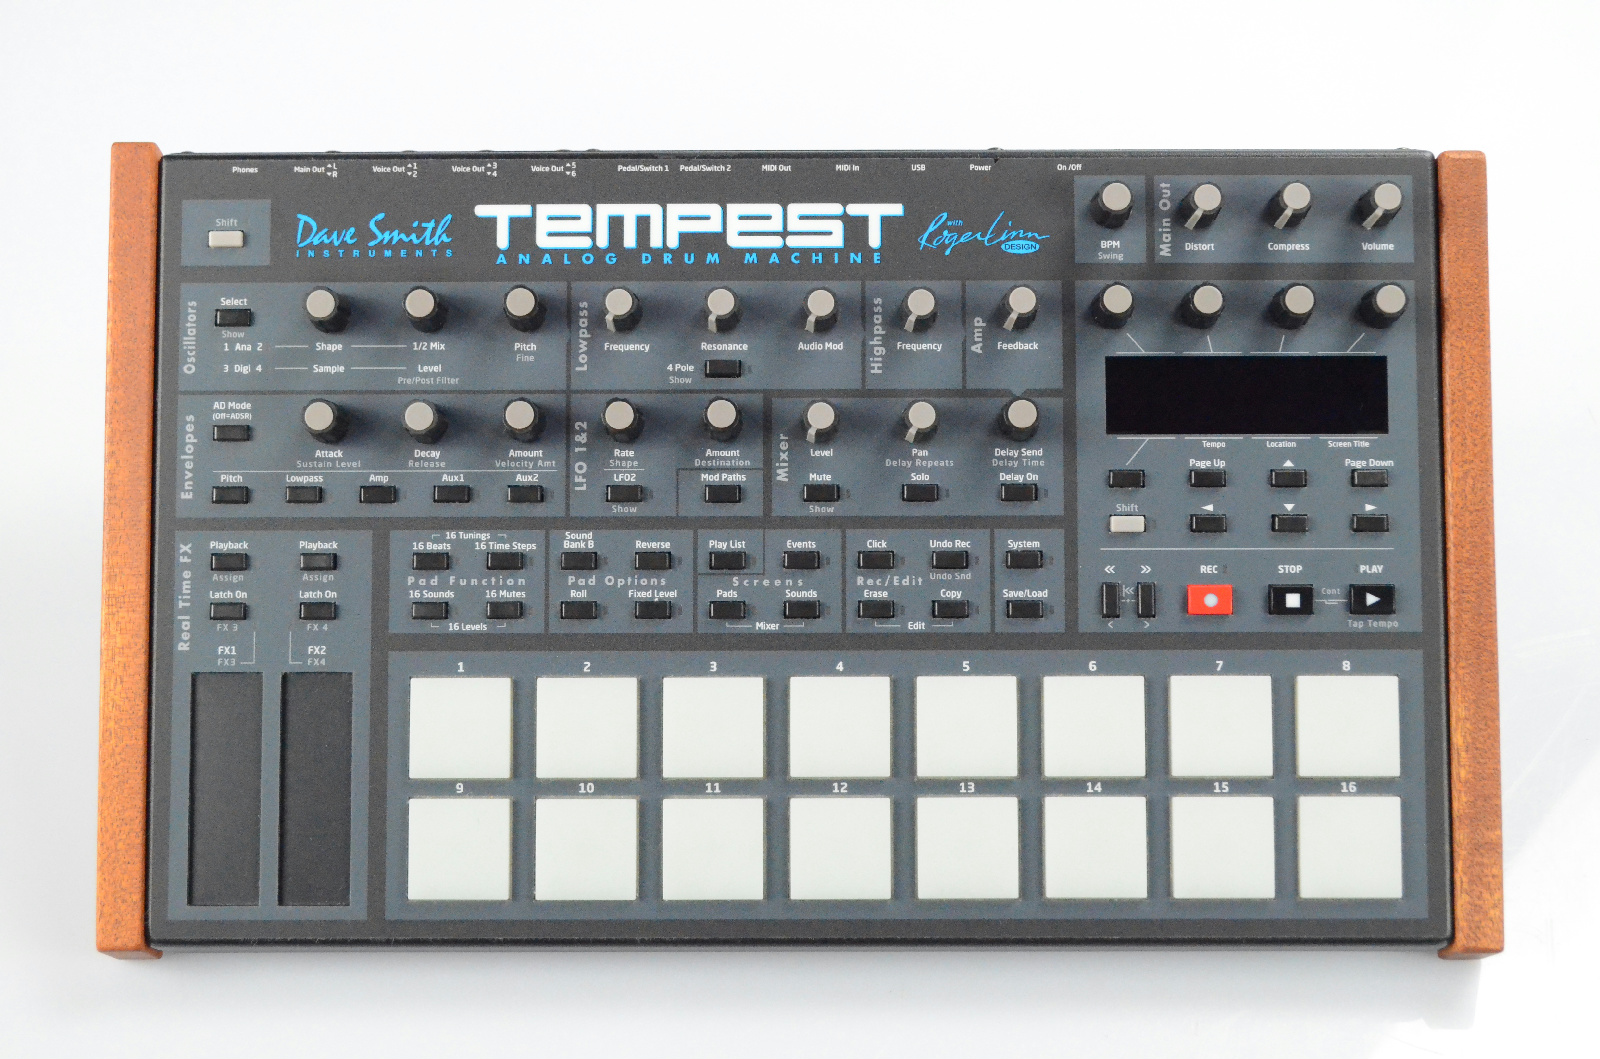 Dave Smith Tempest Drum Machine w/ Mogami Cables & Manuals Roger Linn #32911